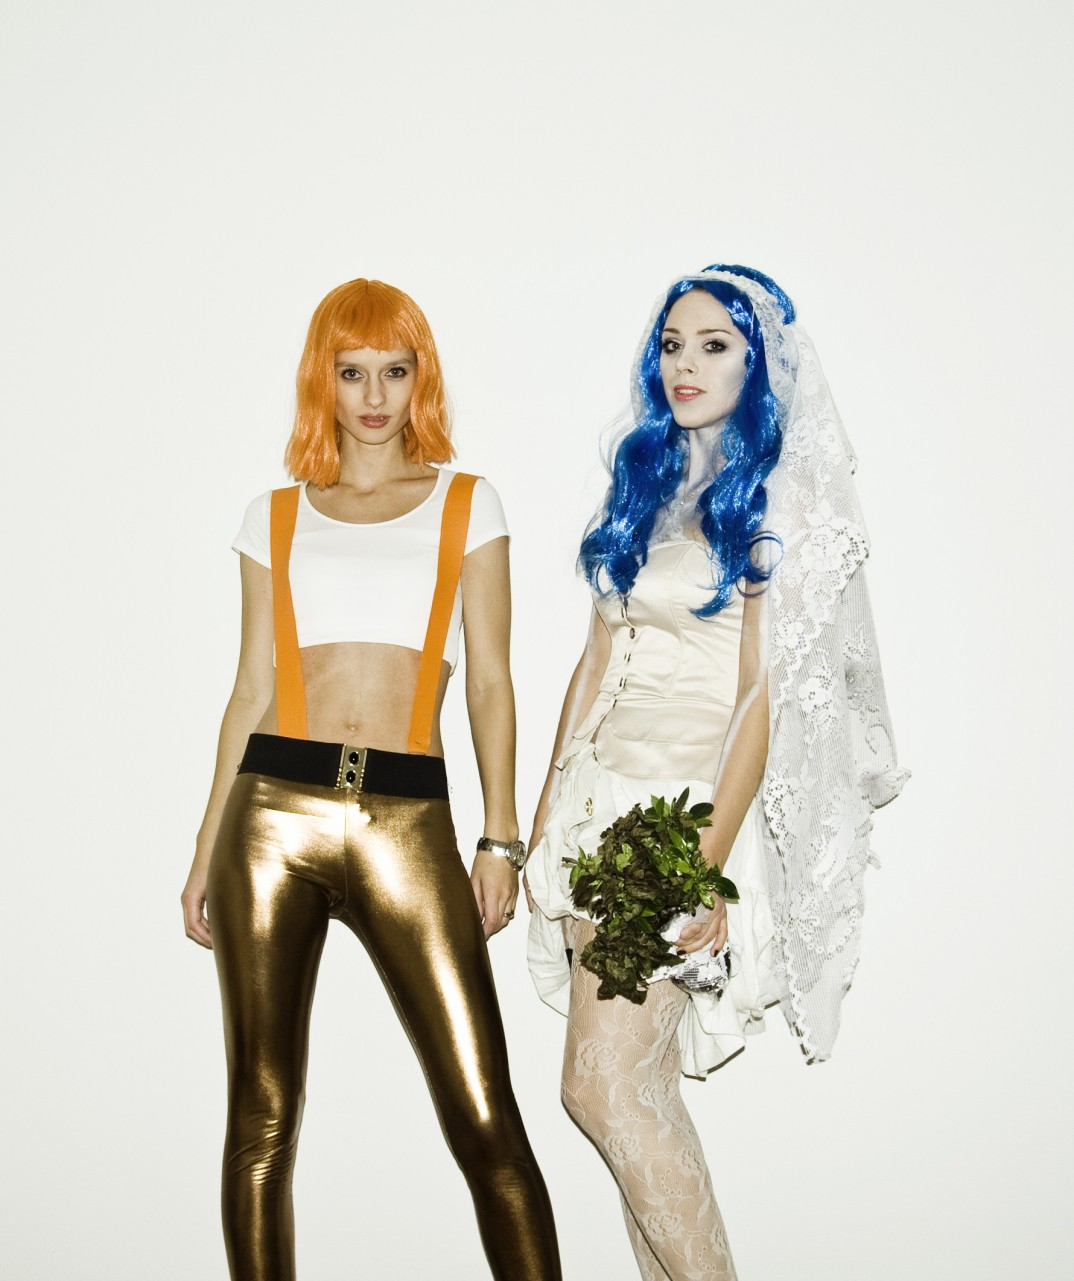 Leeloo Dallas, fifth element + Corpse Bride